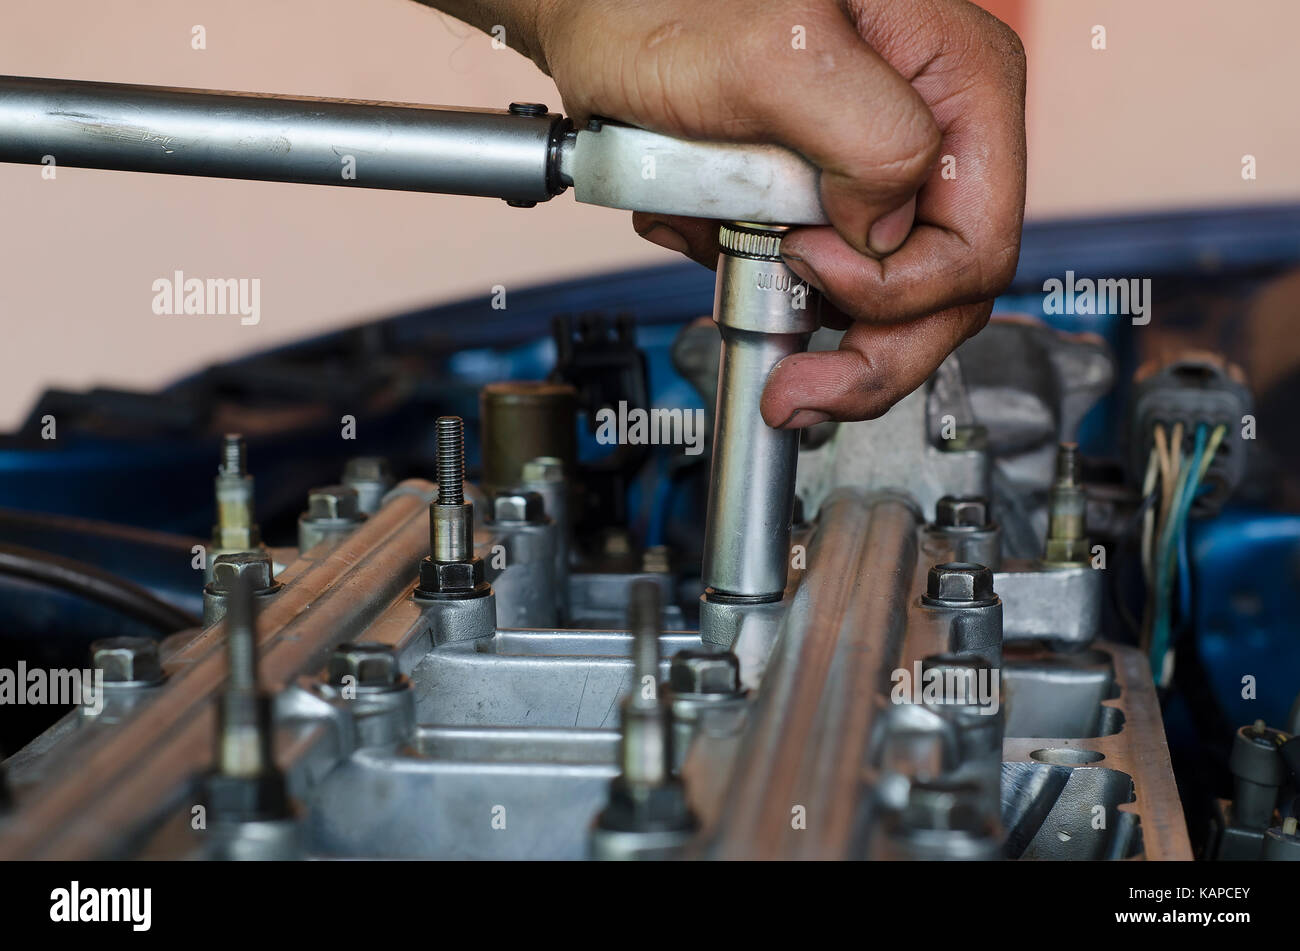 hand with torque wrench tightening screw car engine - Stock Image